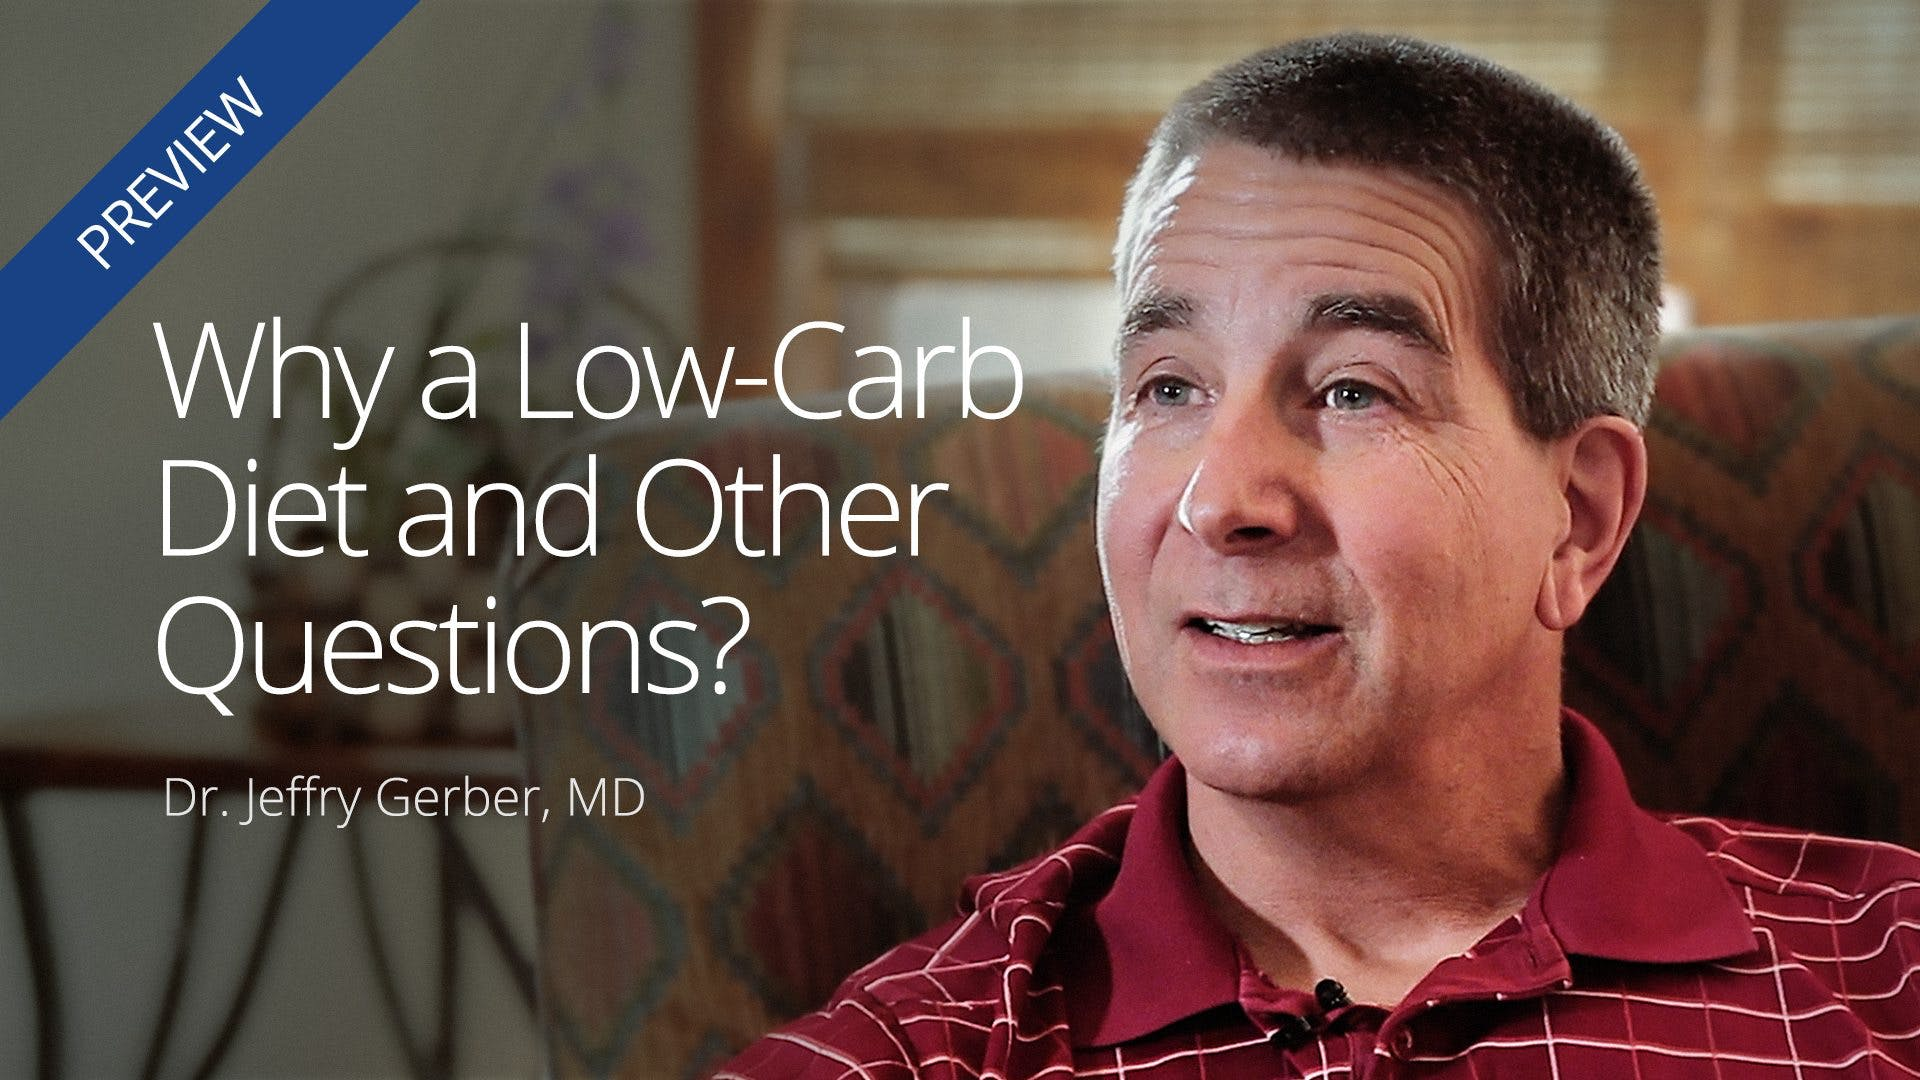 Why a Low-Carb Diet and Other Questions – Dr. Jeffry Gerber